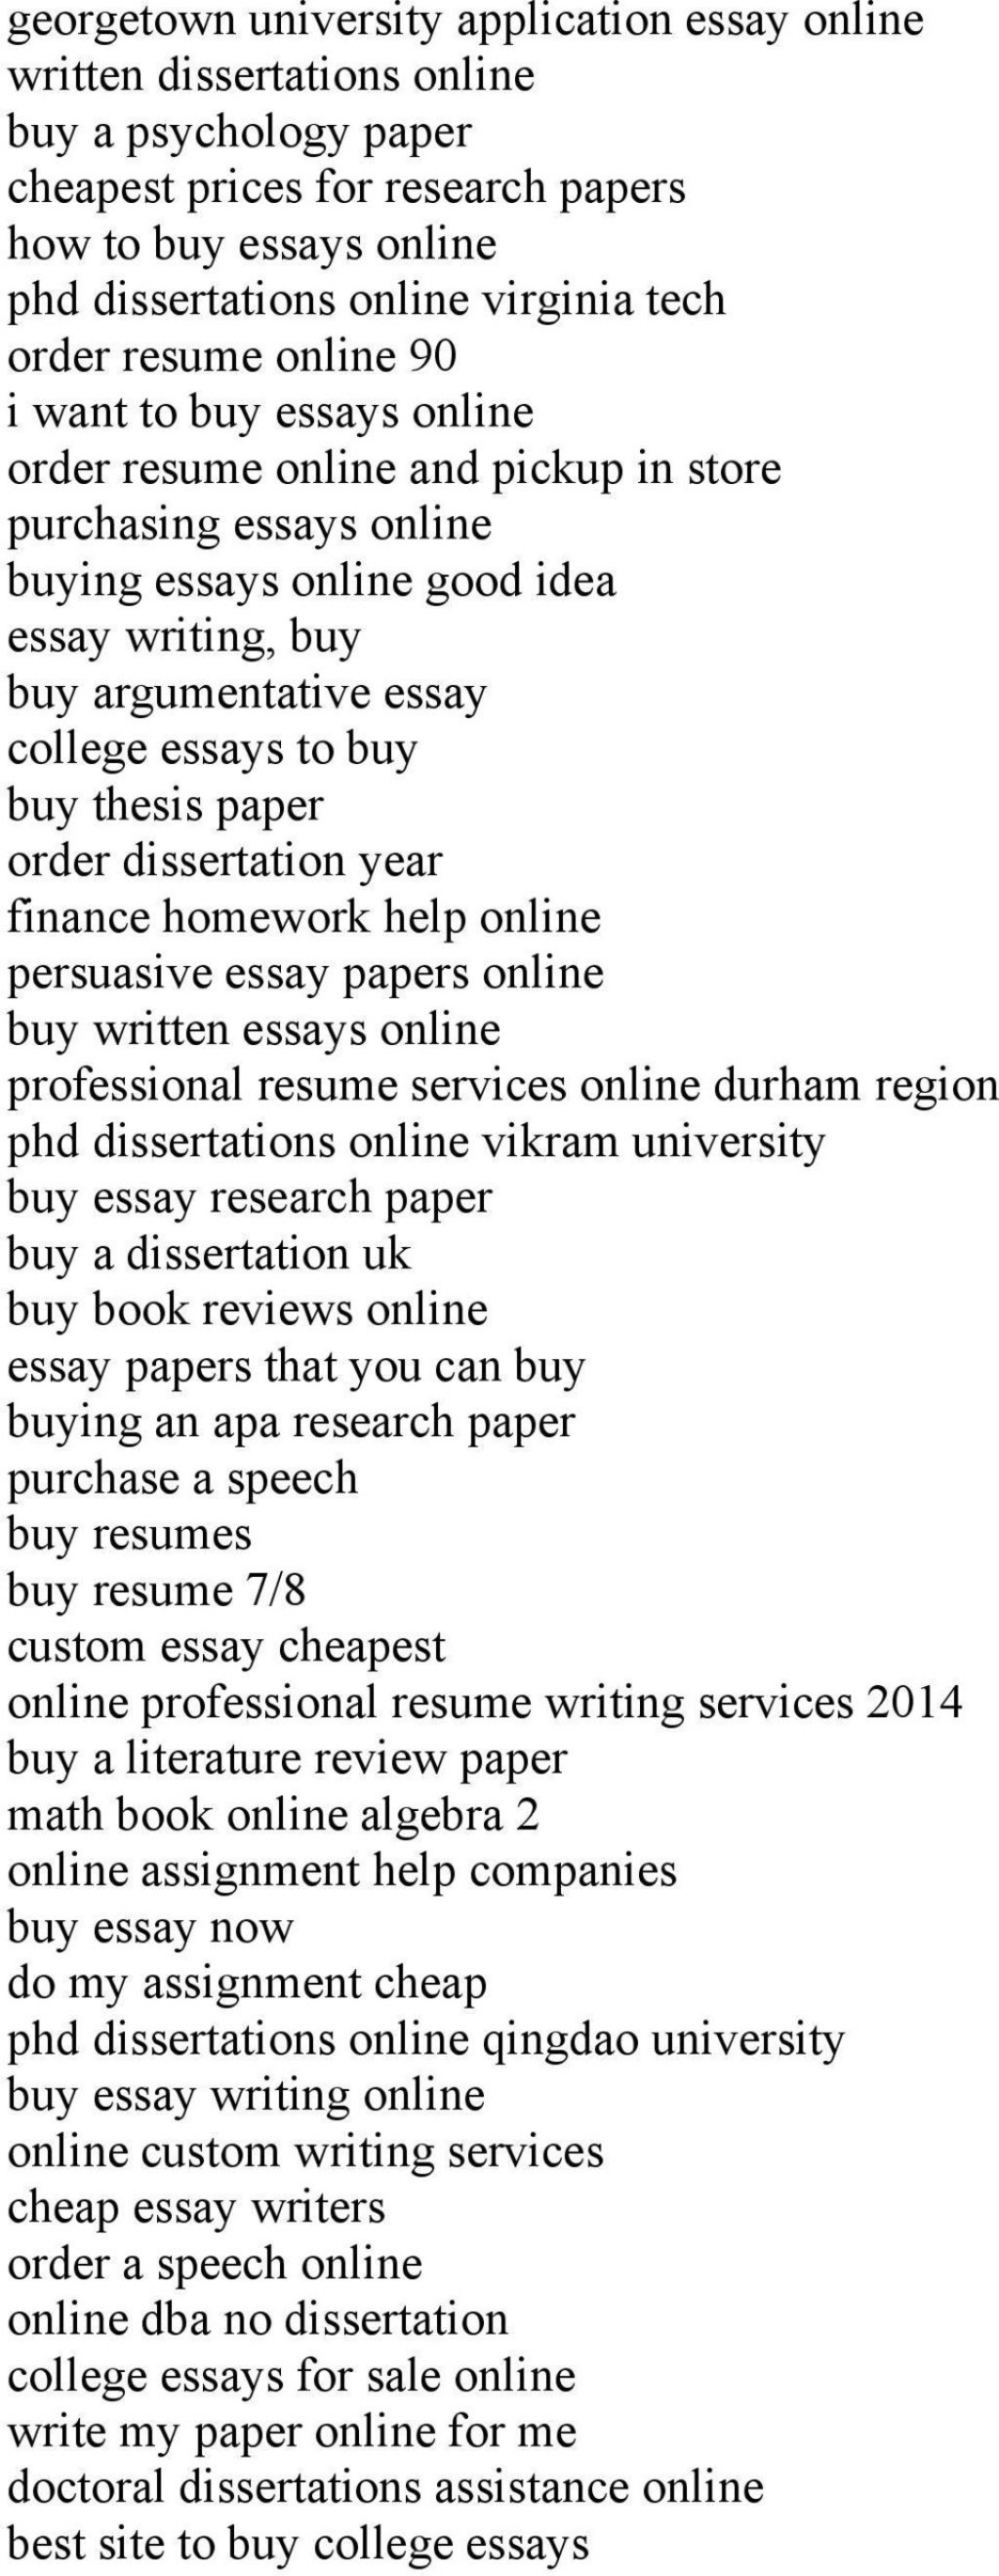 005 Buying Researchs Online Reviews Page 4 Staggering Research Papers Large